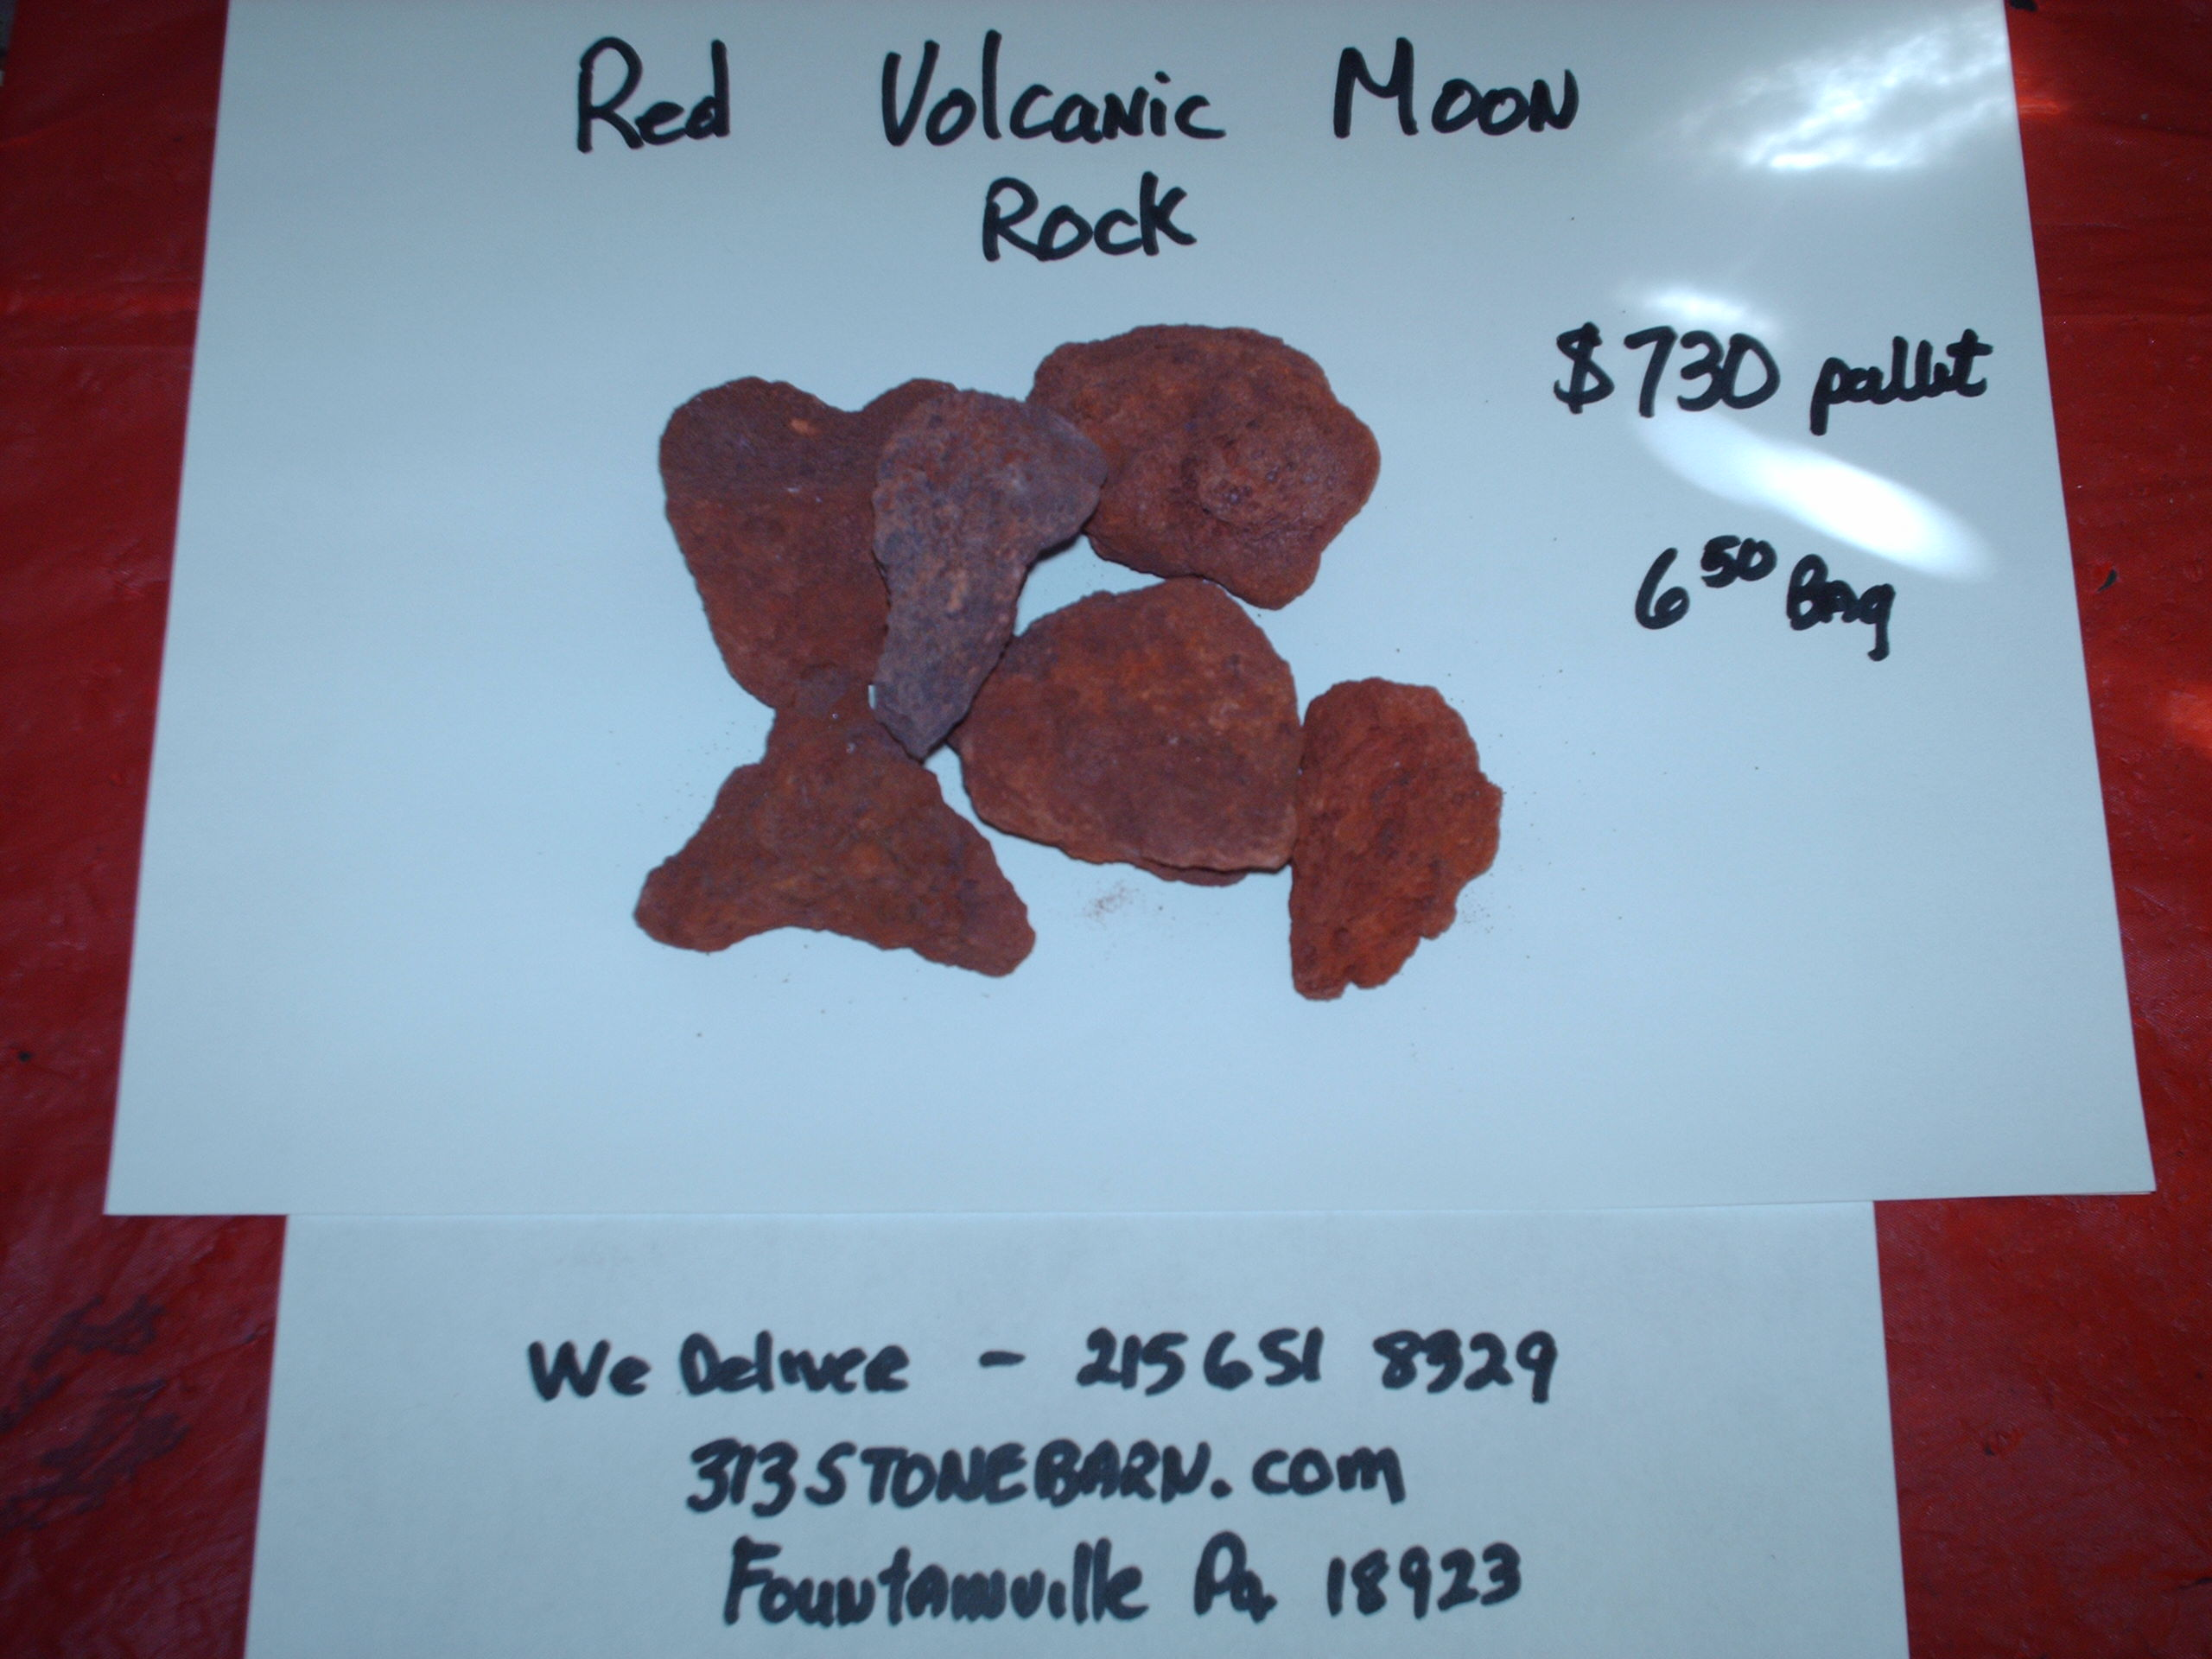 We deliver pallets of these Red Volcanic Moon Rocks.